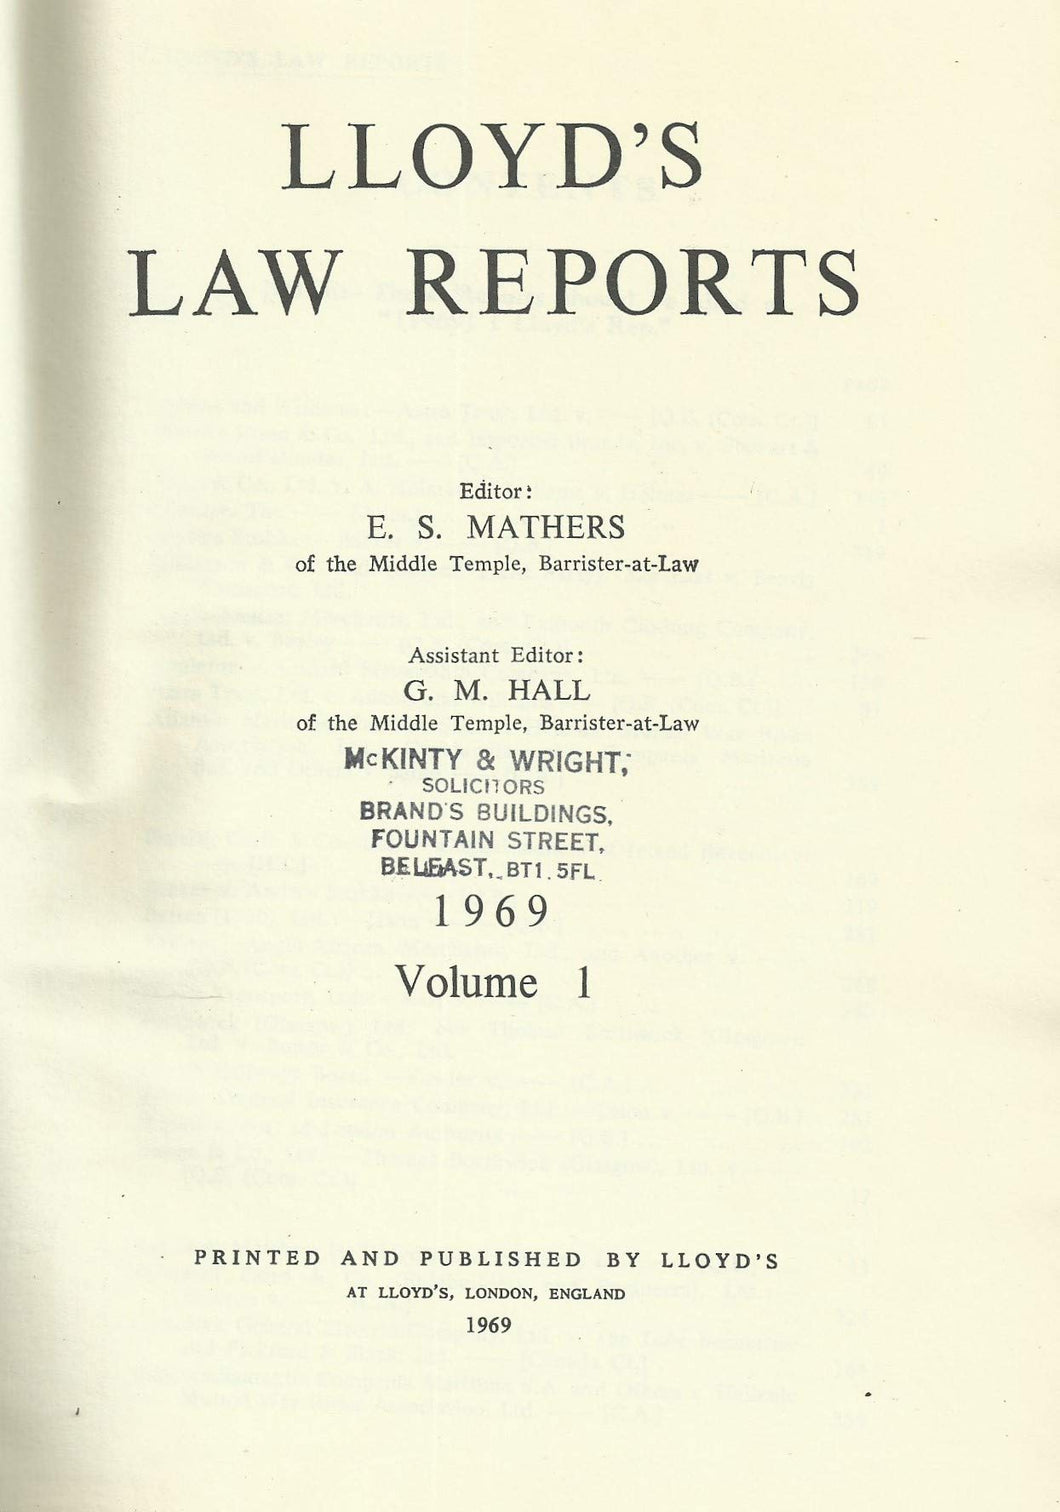 Lloyd's Law Reports - 1969, Volume 1 (Volume I)